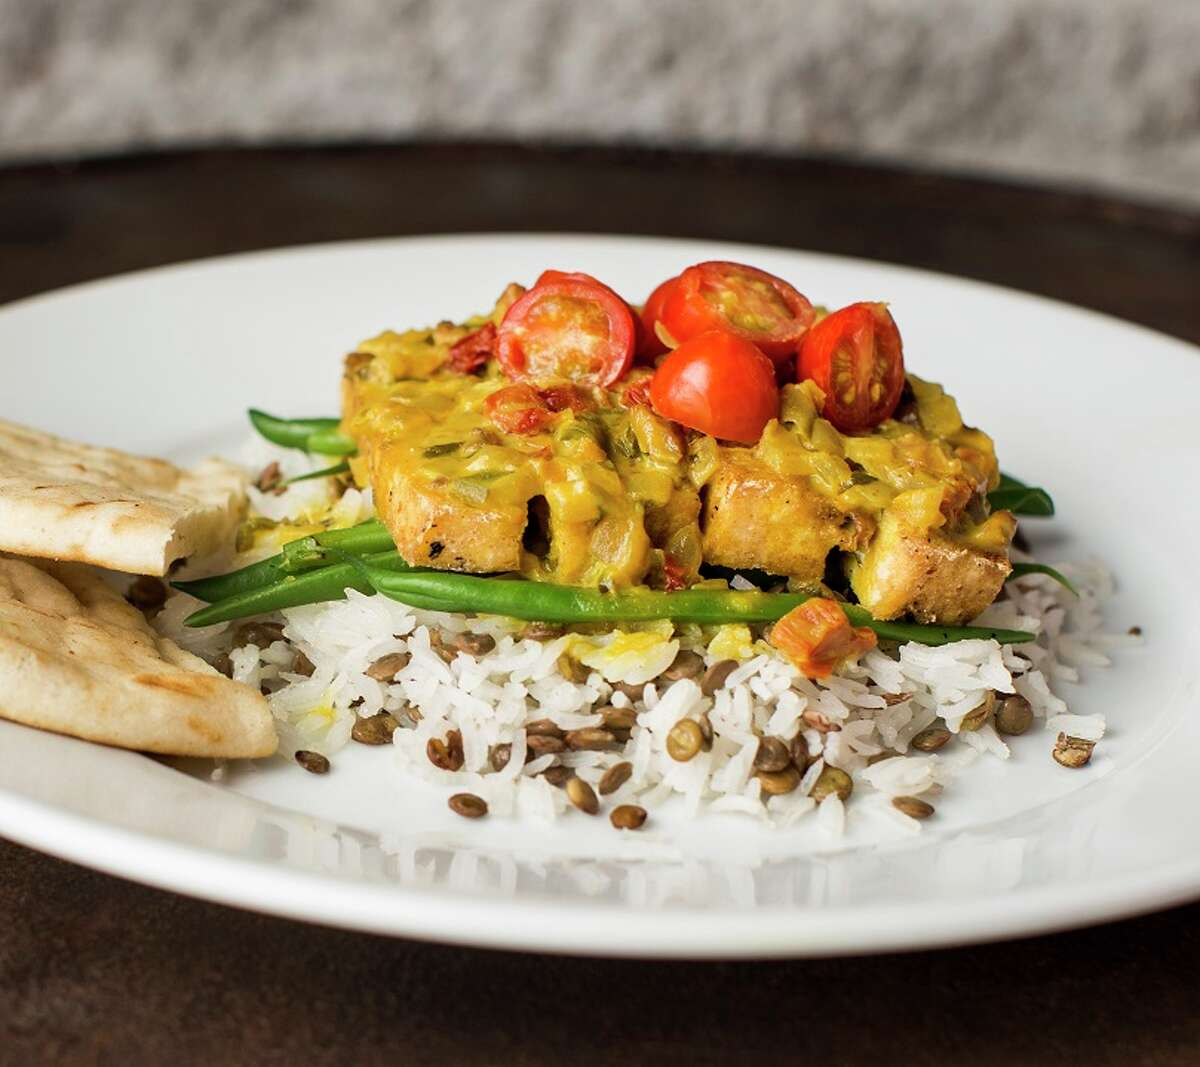 Hungry's restaurants (Rice Village, Memorial) have launched new daily vegan menu items. Shown: Tuscan tofu.